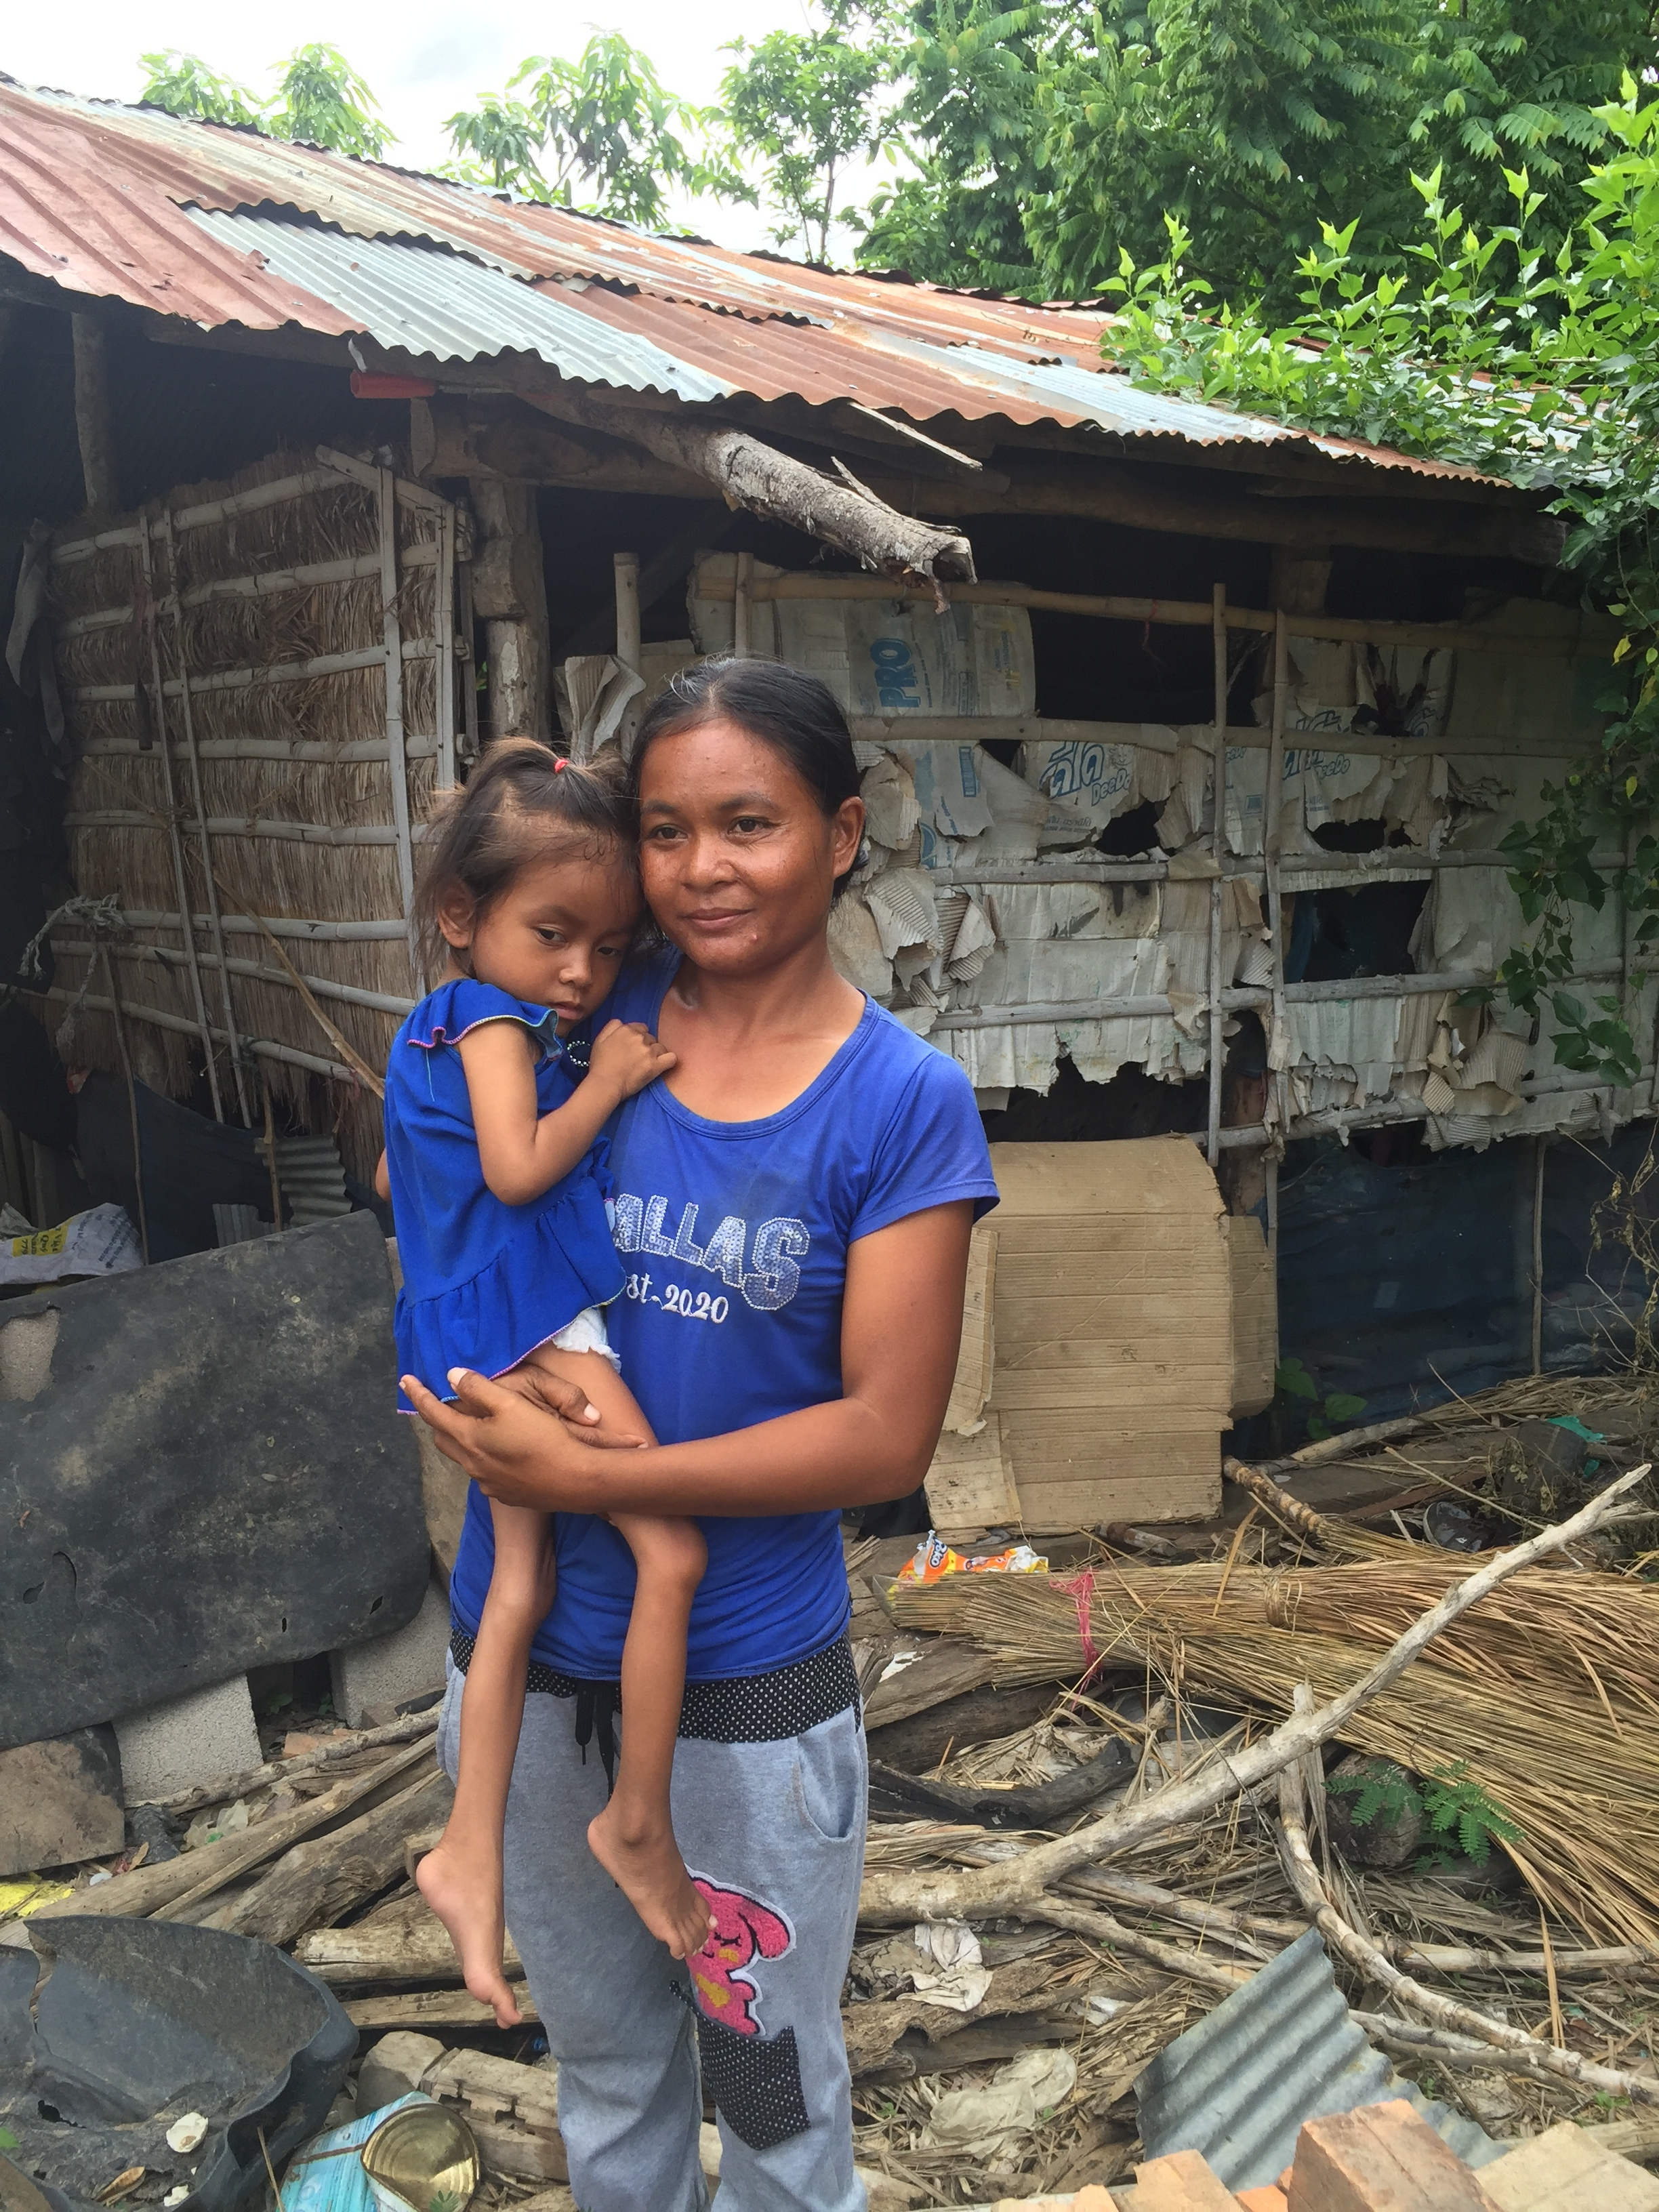 Pai and Ganya in front of their hut.